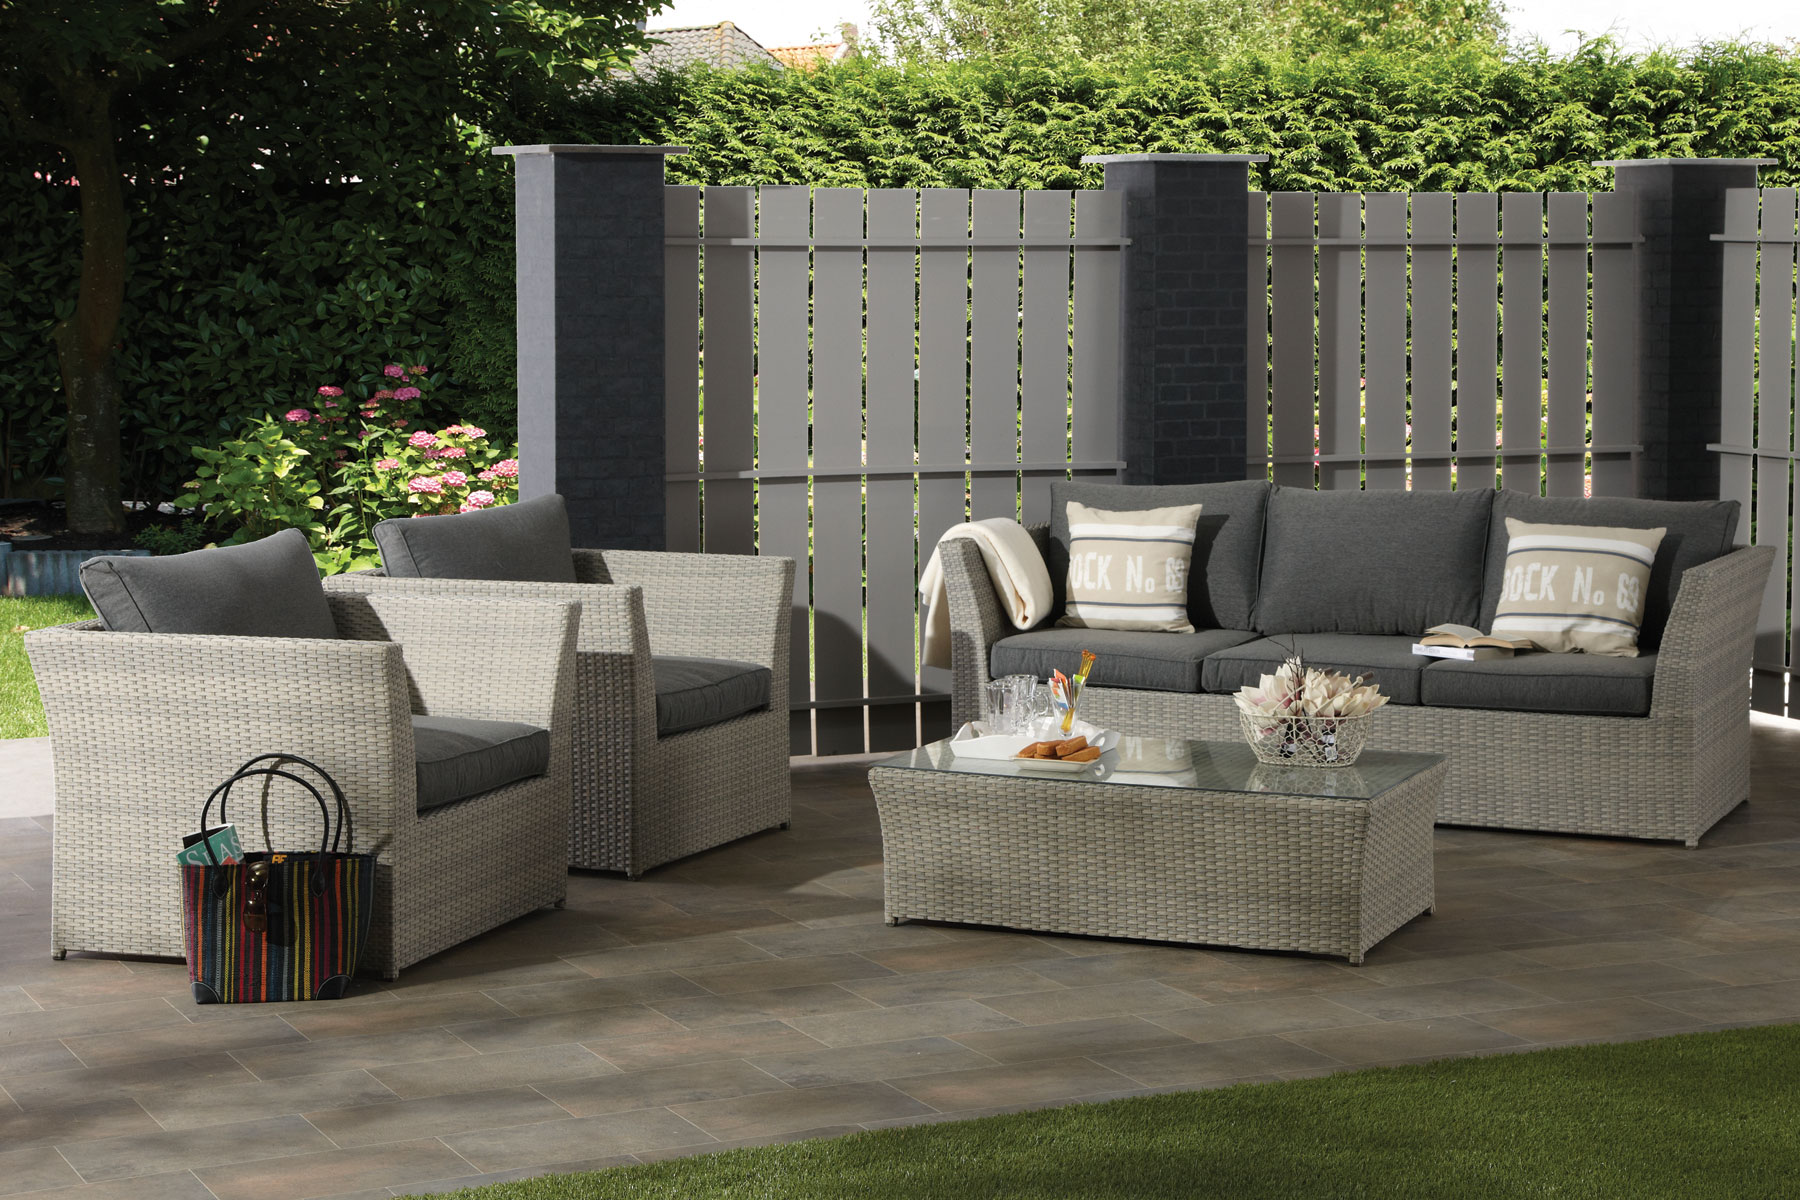 polyrattan gartenloungem bel bei zeottexx gartenm belausstellung. Black Bedroom Furniture Sets. Home Design Ideas